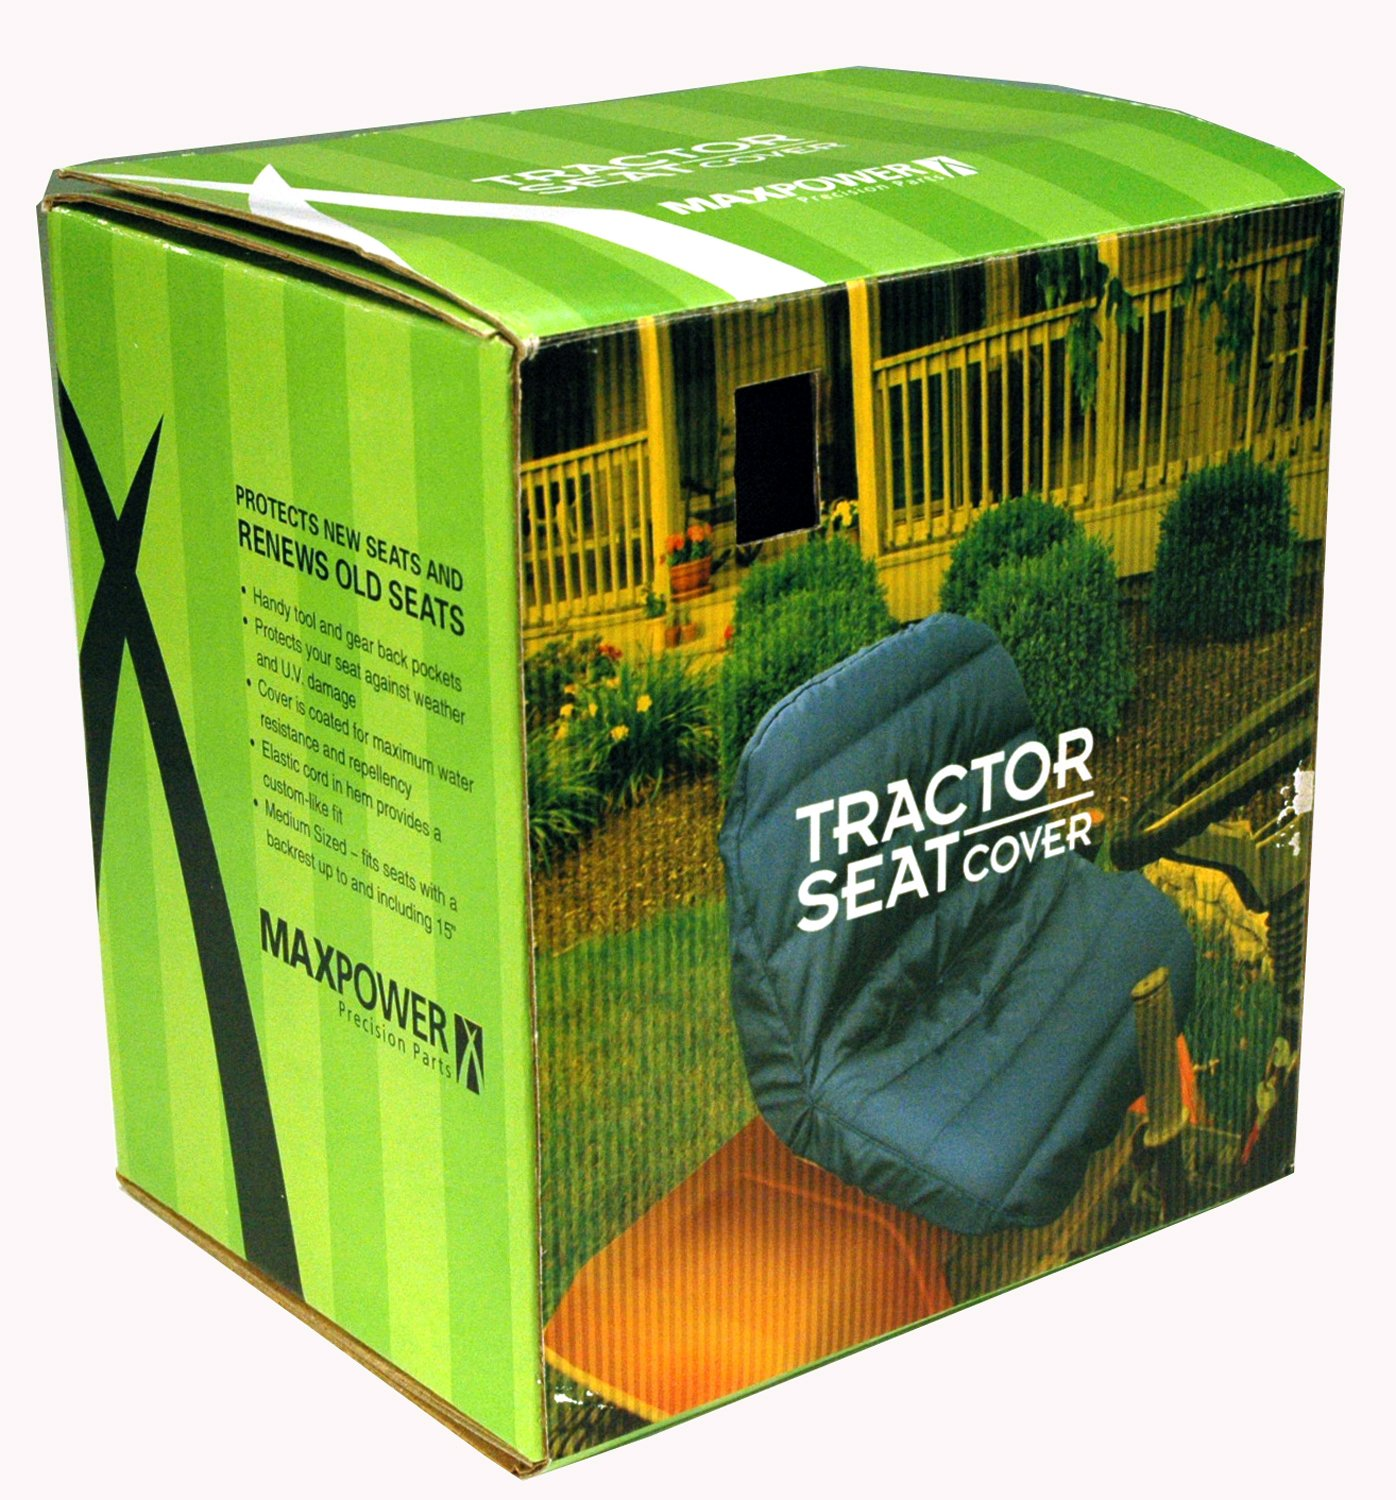 Maxpower 334550 Deluxe Lawn Tractor Seat Cover